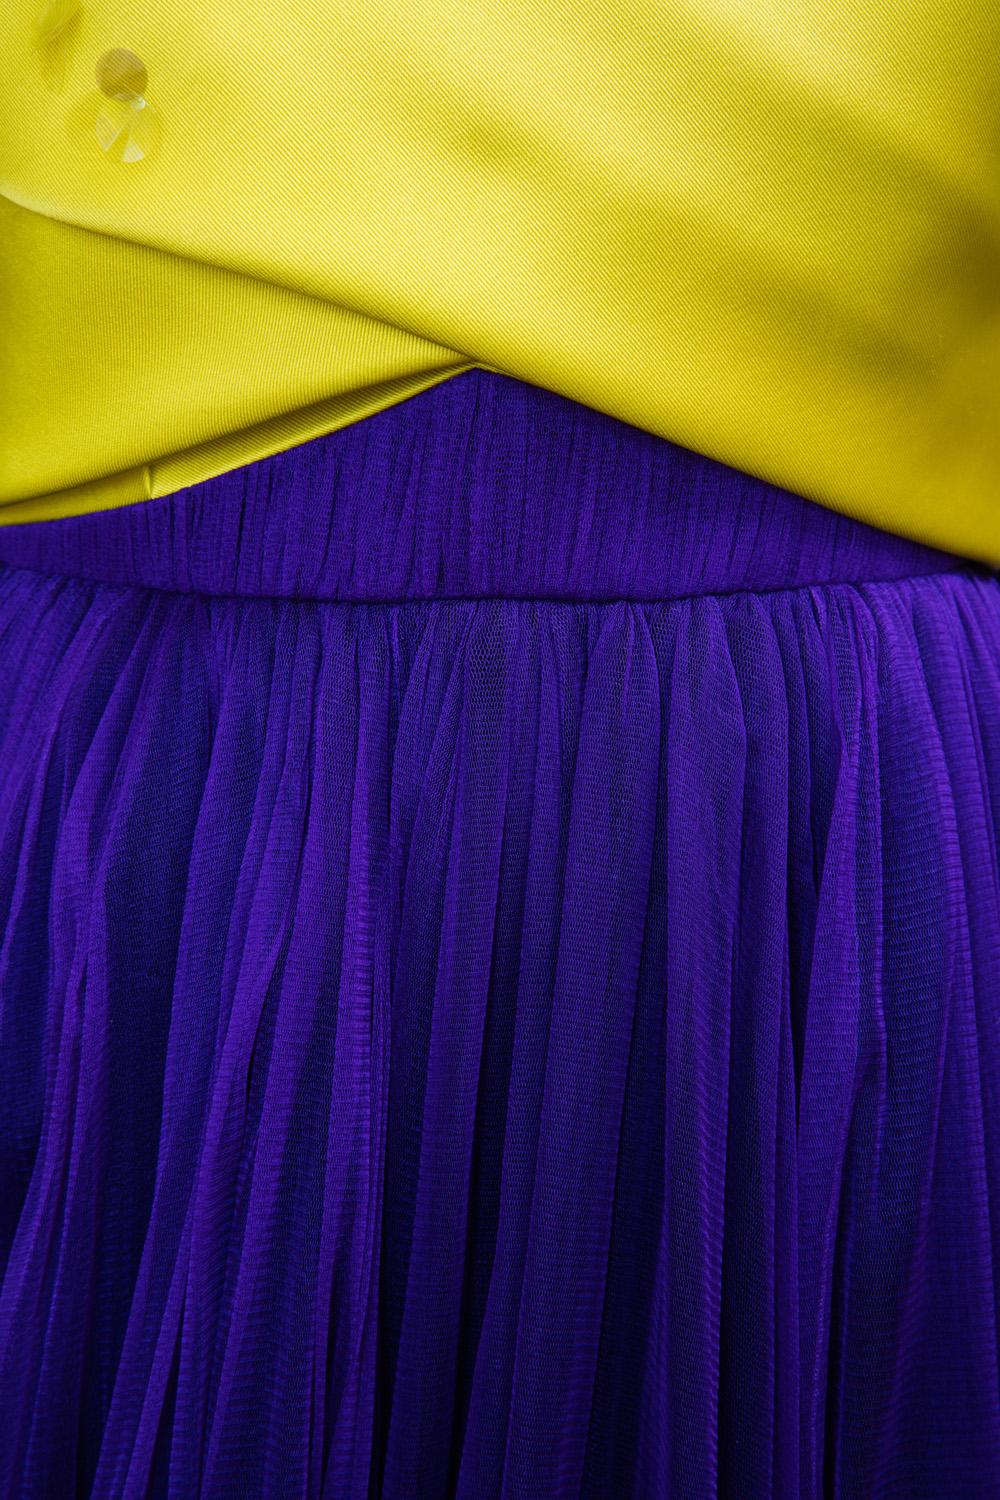 Yellow and purple gown